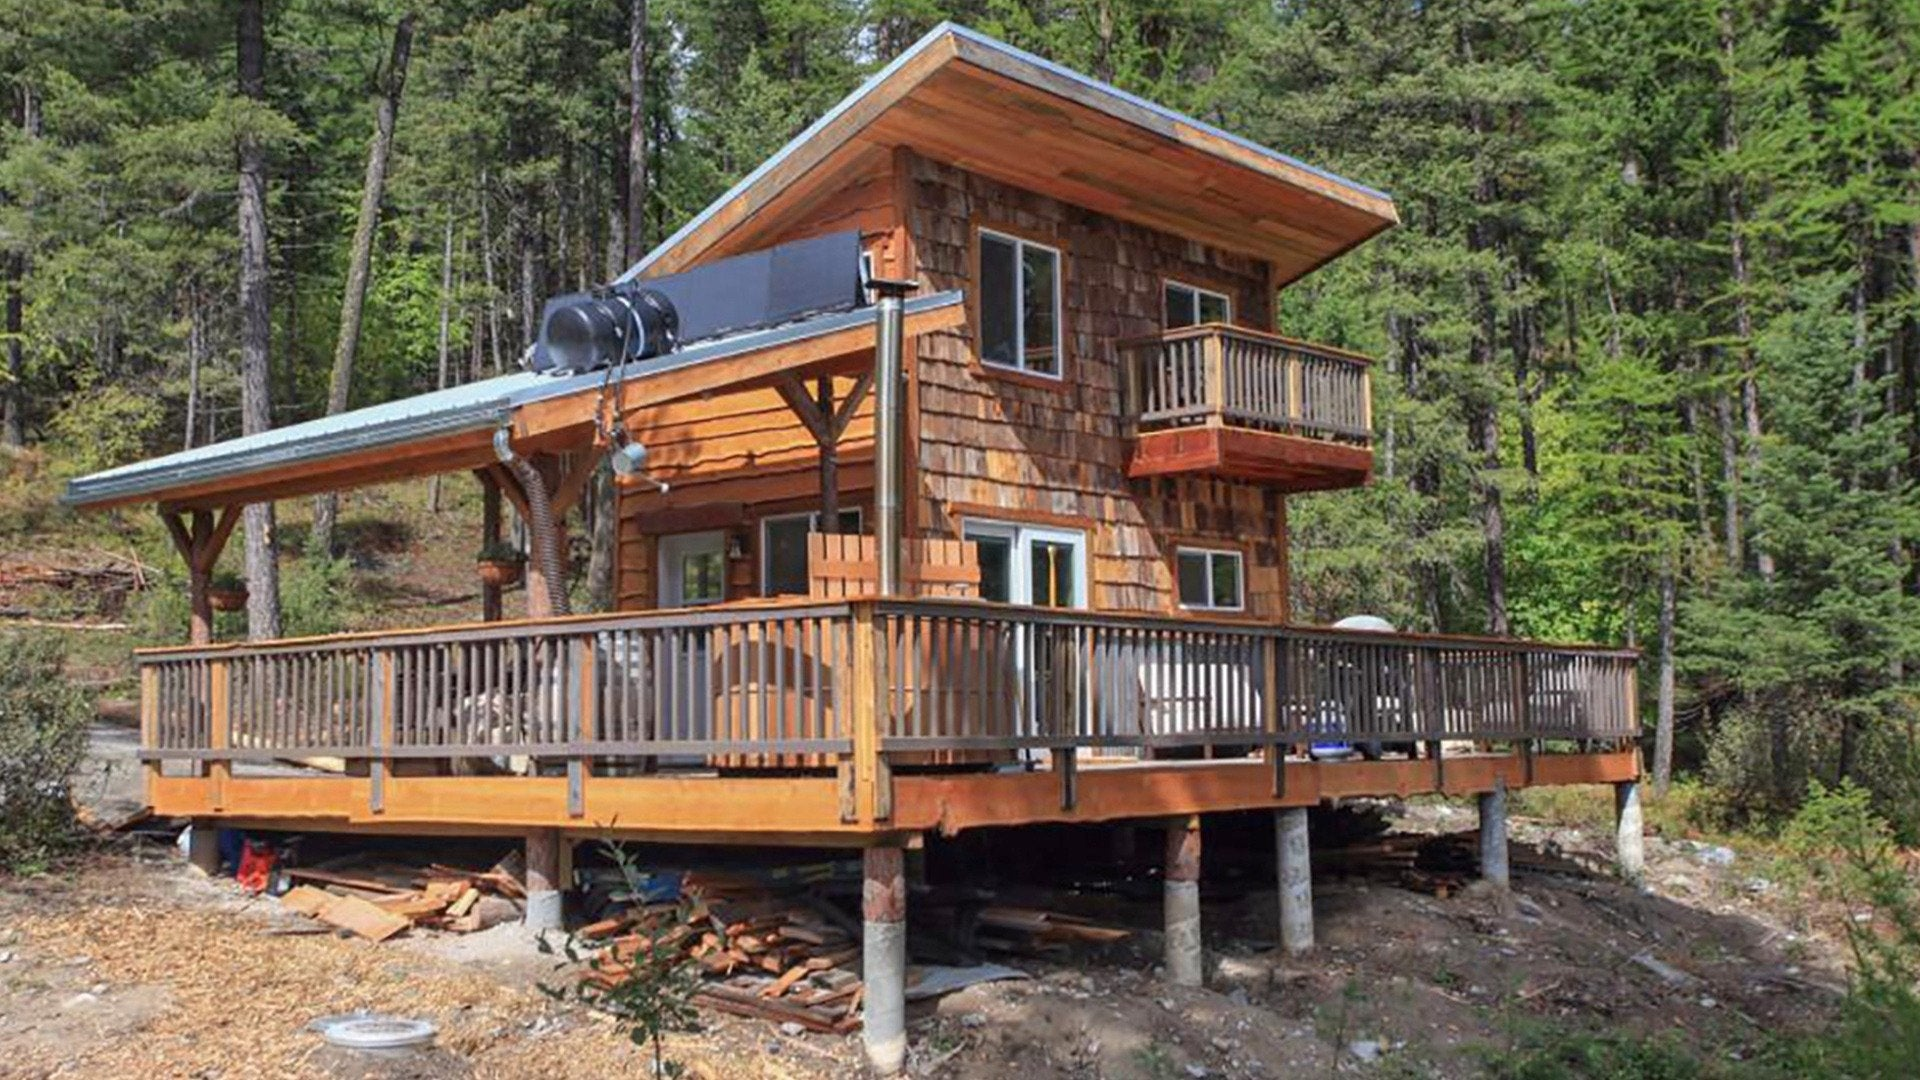 Building Off the Grid: Tiny House on a Lake